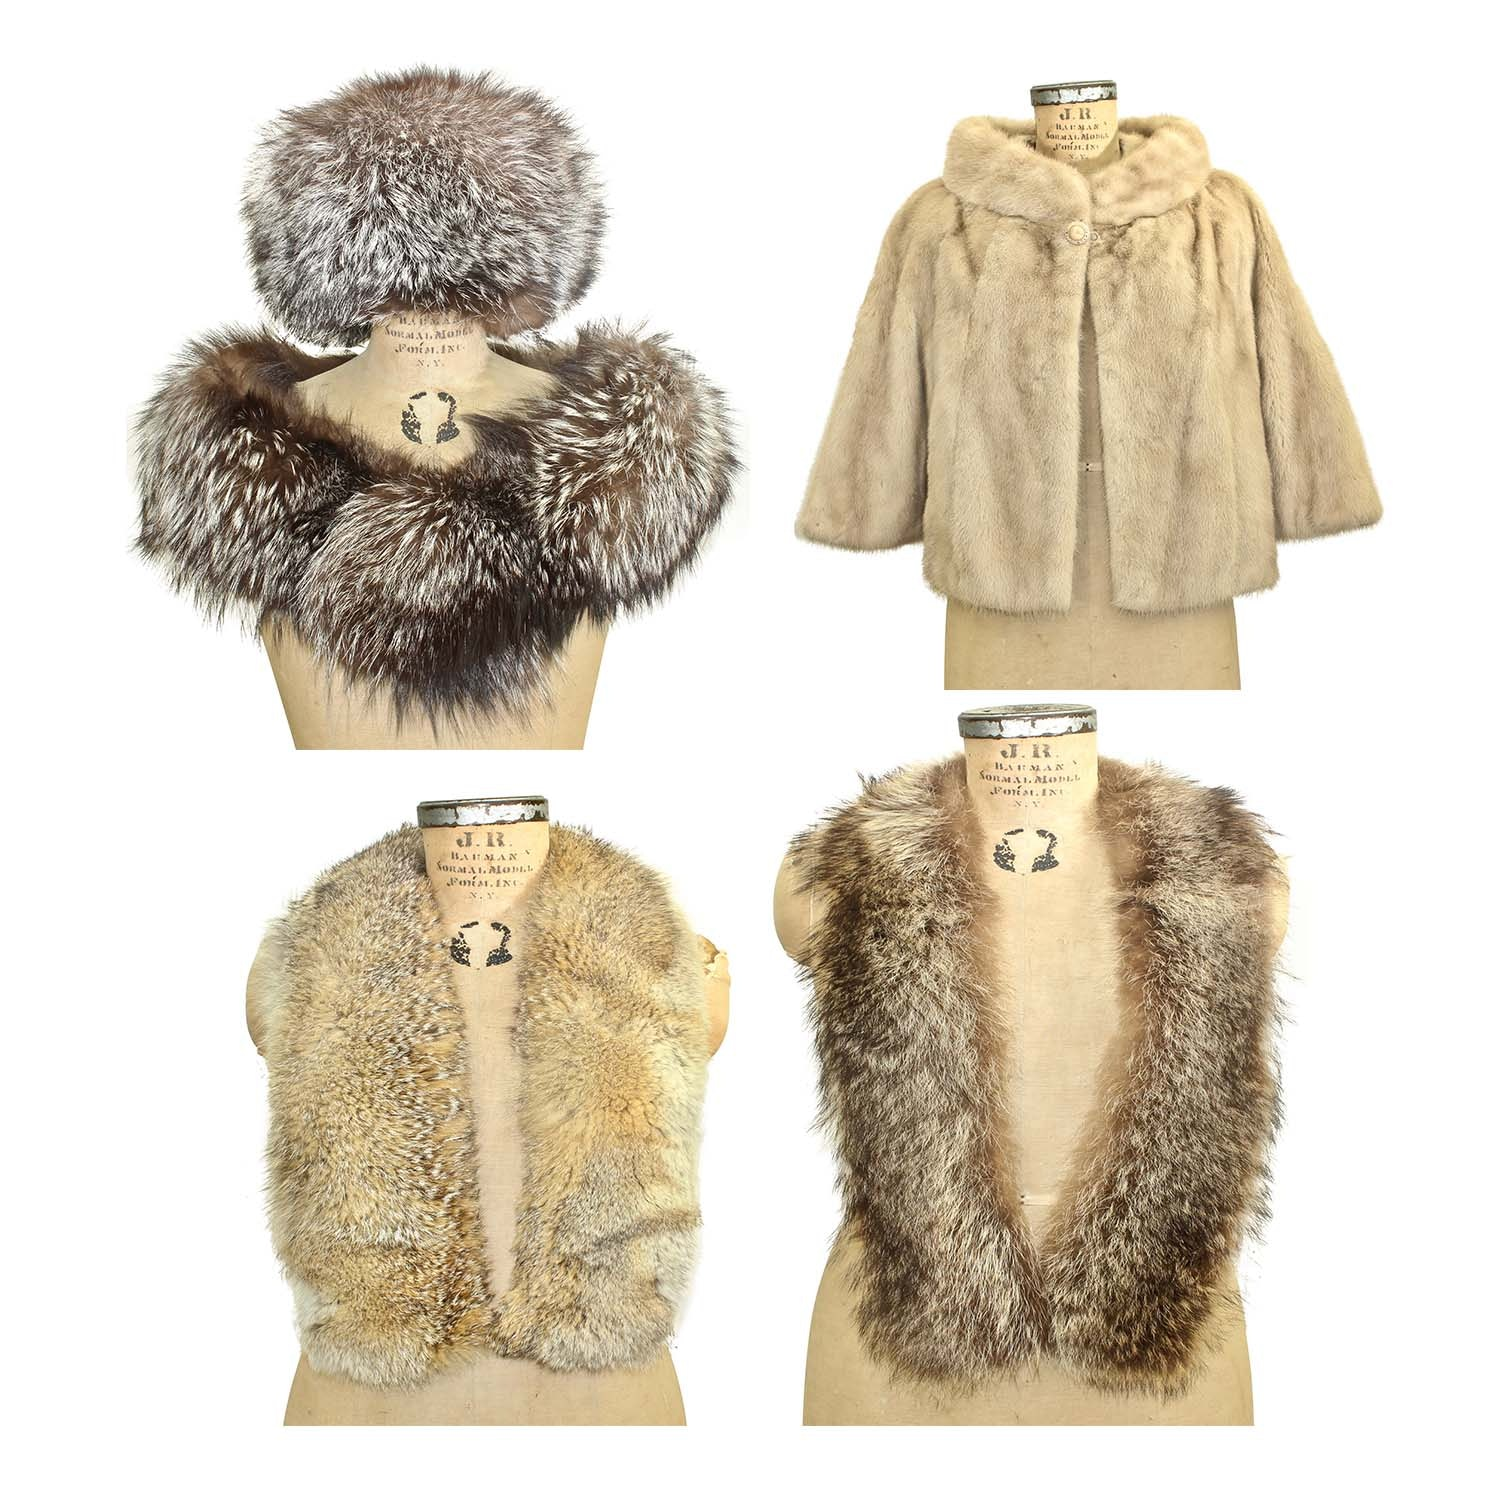 Mink Fur Stole, Fox Fur Hat and Shoulder Wrap with Raccoon and Coyote Fur Stoles